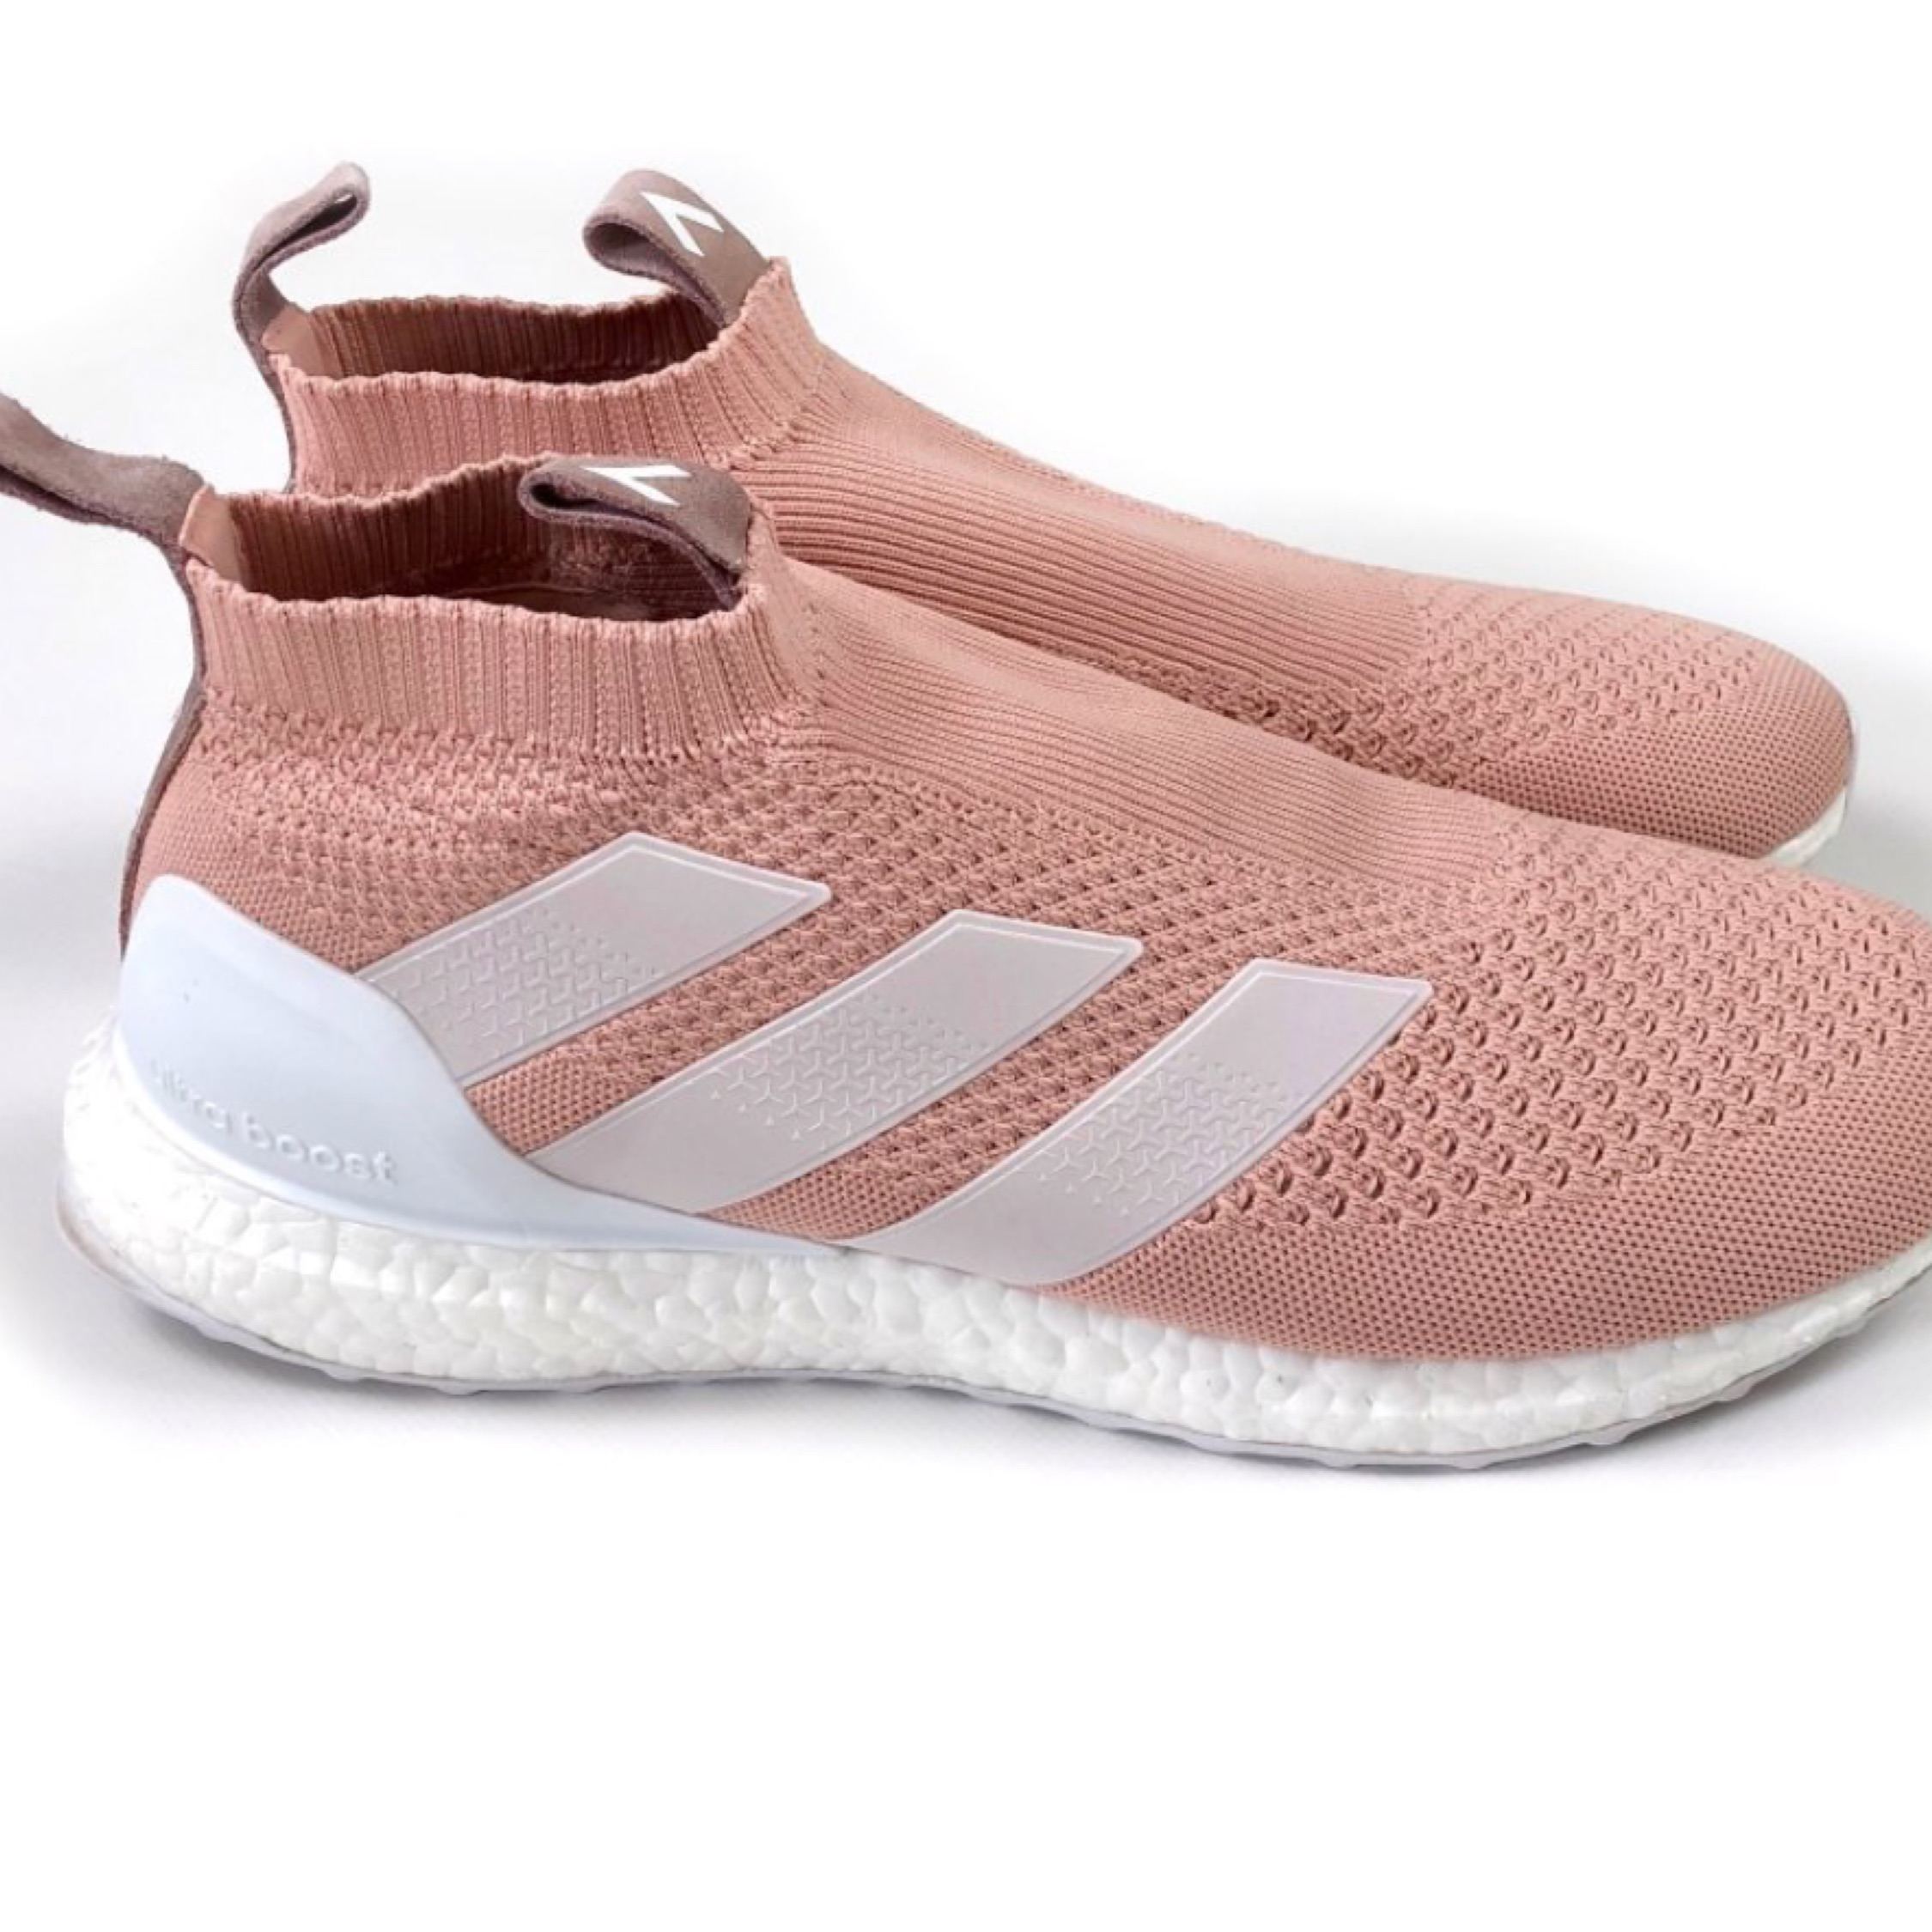 best loved 6f9ce 49f1e Adidas X Kith Ace 16+ Pure Control